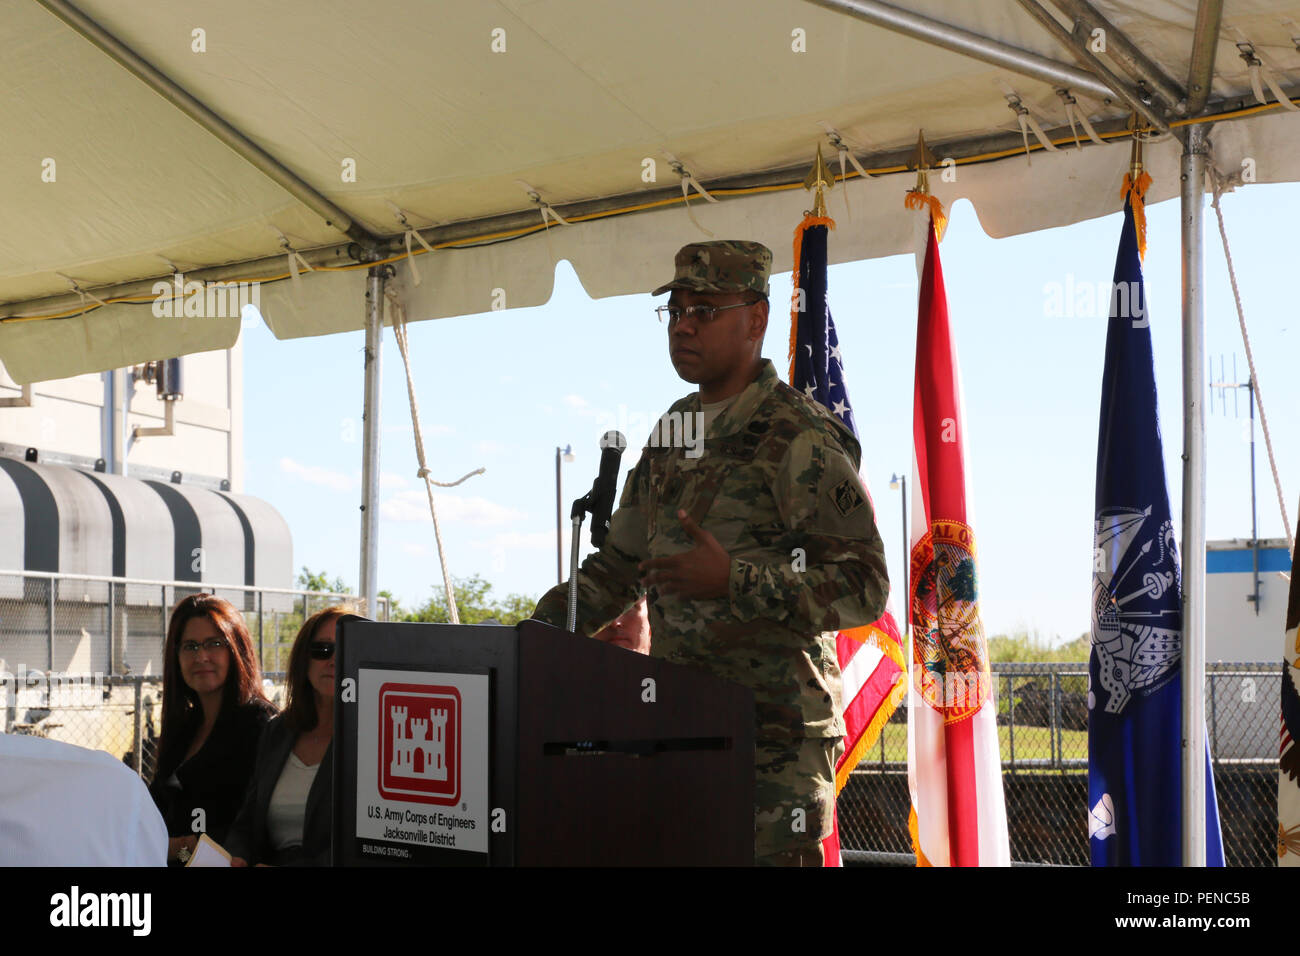 """""""We're working alongside federal, state & local partners to restore this precious ecosystem & protect those who call the Everglades home,"""" said Brig. Gen. C. David Turner, South Atlantic Division commanding general, at the C-111 groundbreaking ceremony on Jan. 7, 2016. Stock Photo"""